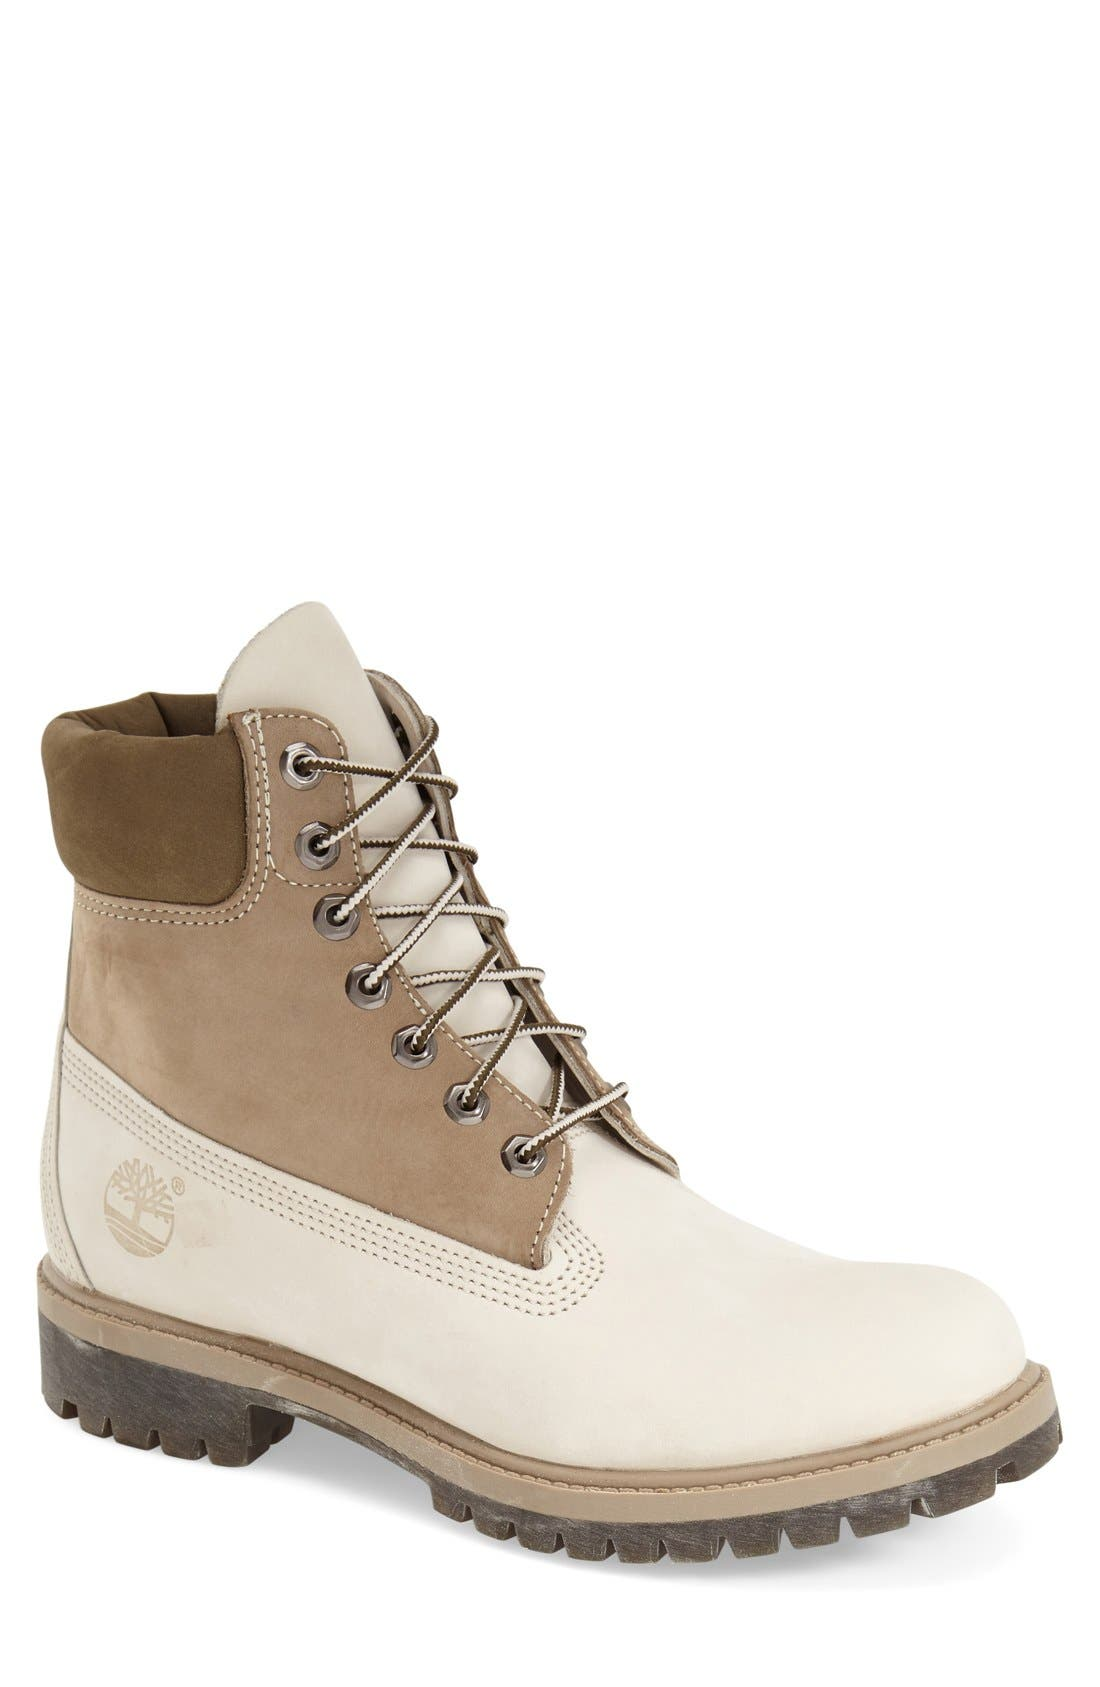 Alternate Image 1 Selected - Timberland 'Premium Tone on Tone' Waterproof Boot (Men)